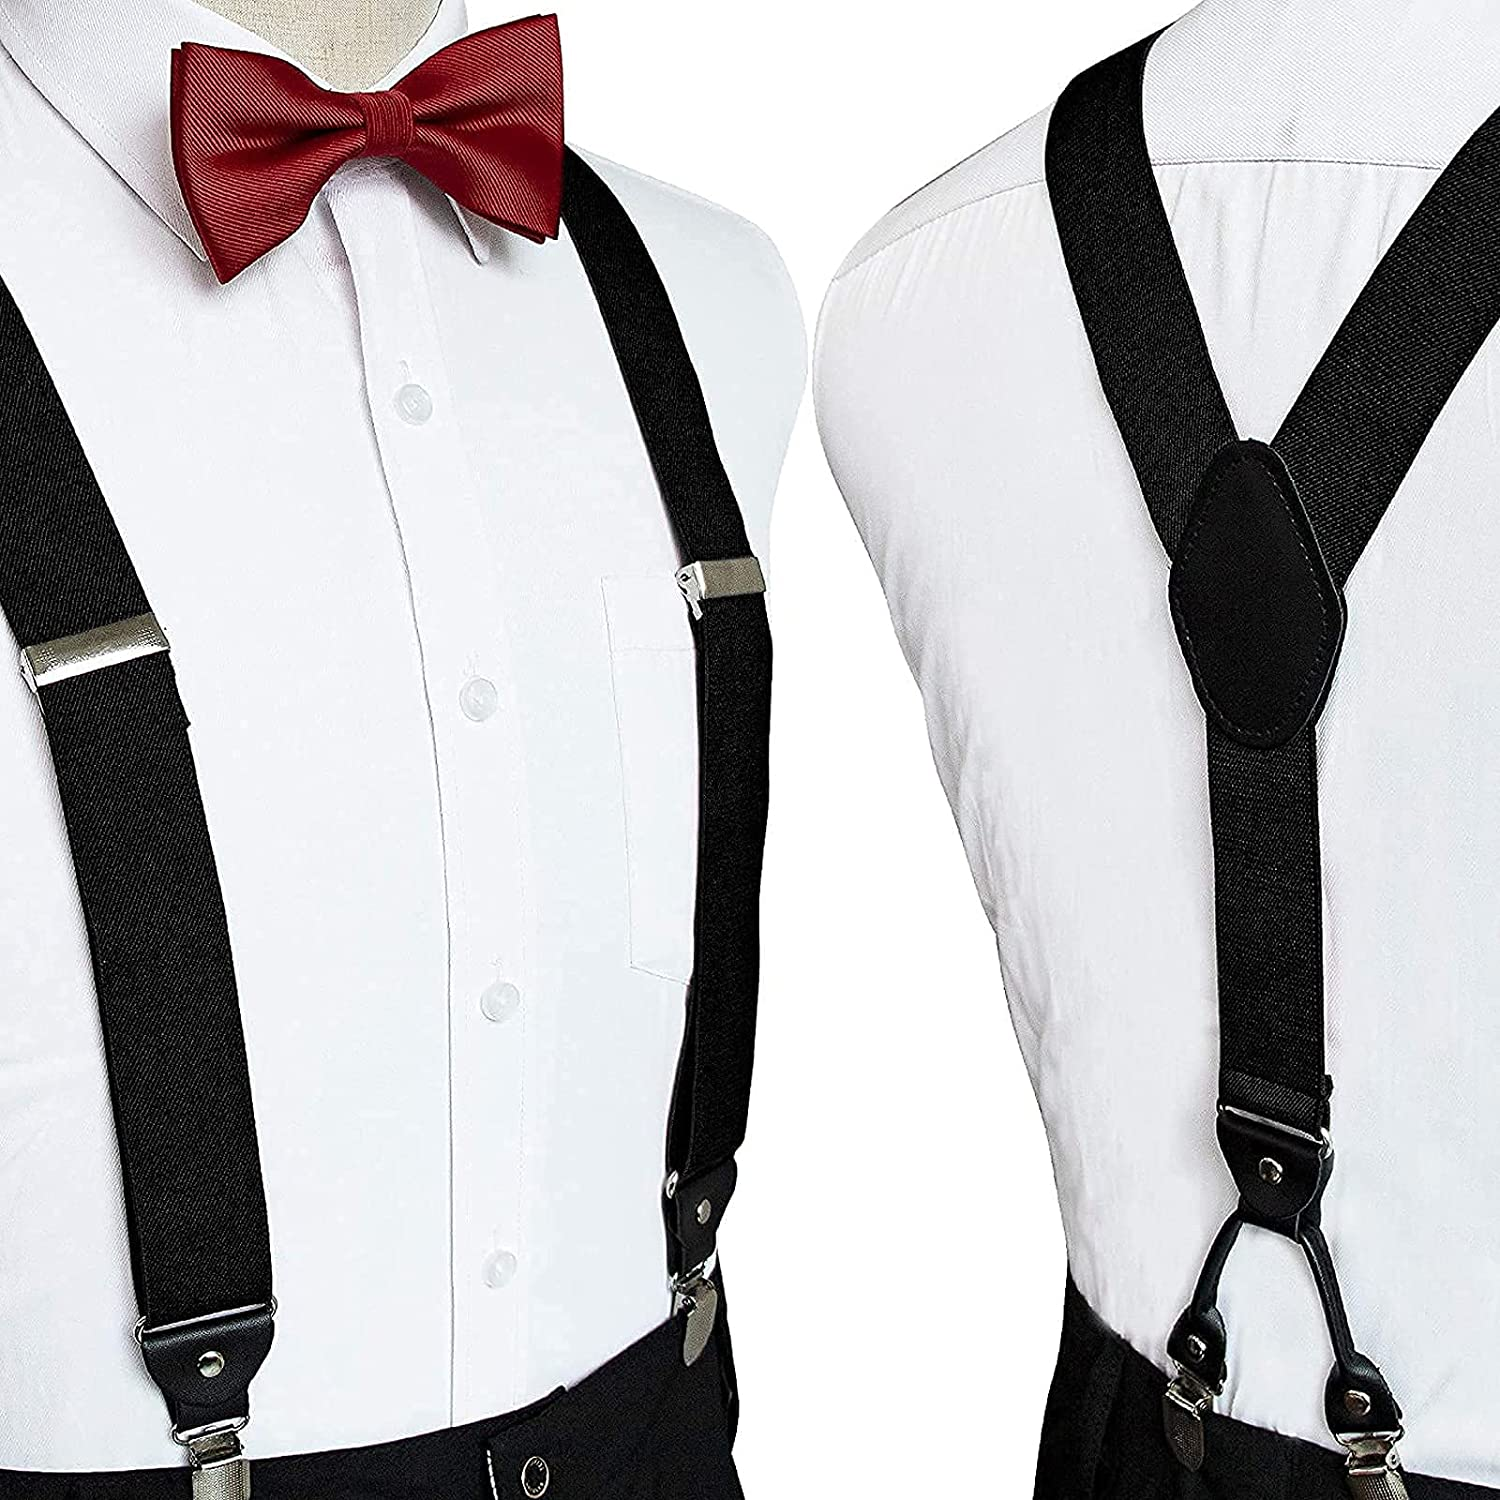 Bowtie and Suspenders for Men Y-shape Suspender Men's Back Bowtie Suspender Set for Weddings & Homecoming & Formal Events & Casual Outfit (Claret Red Bowtie)